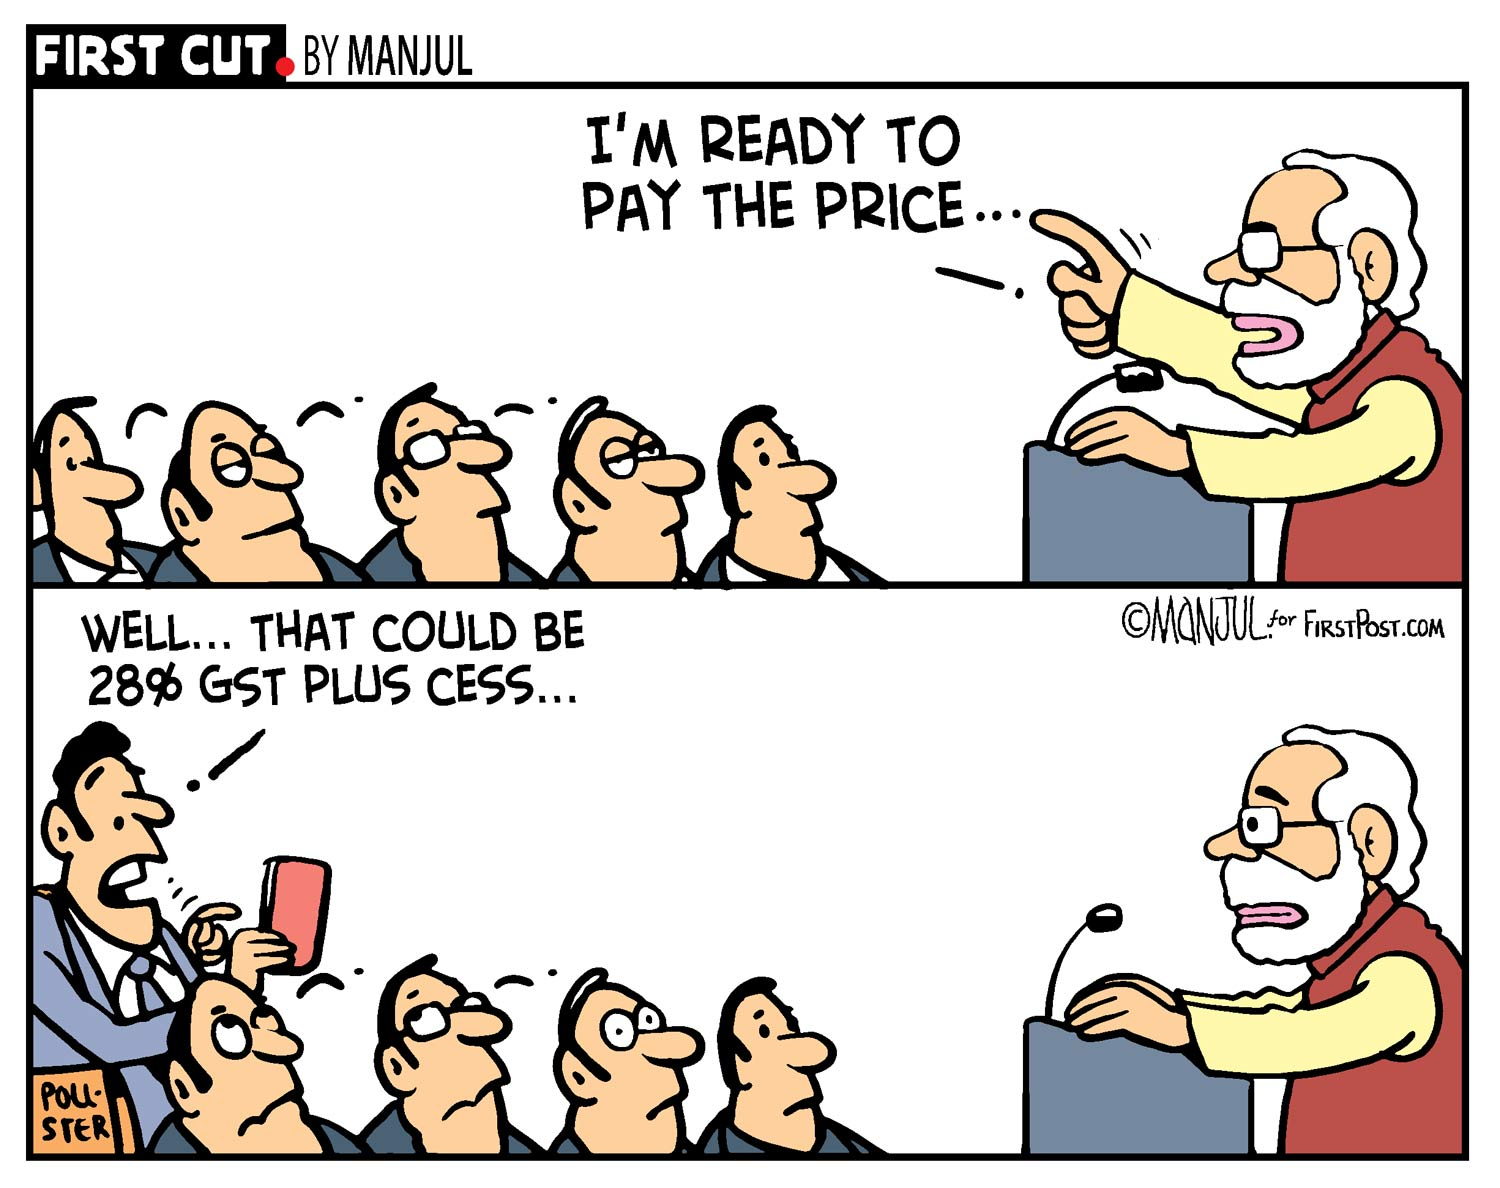 Cartoon by Manjul.